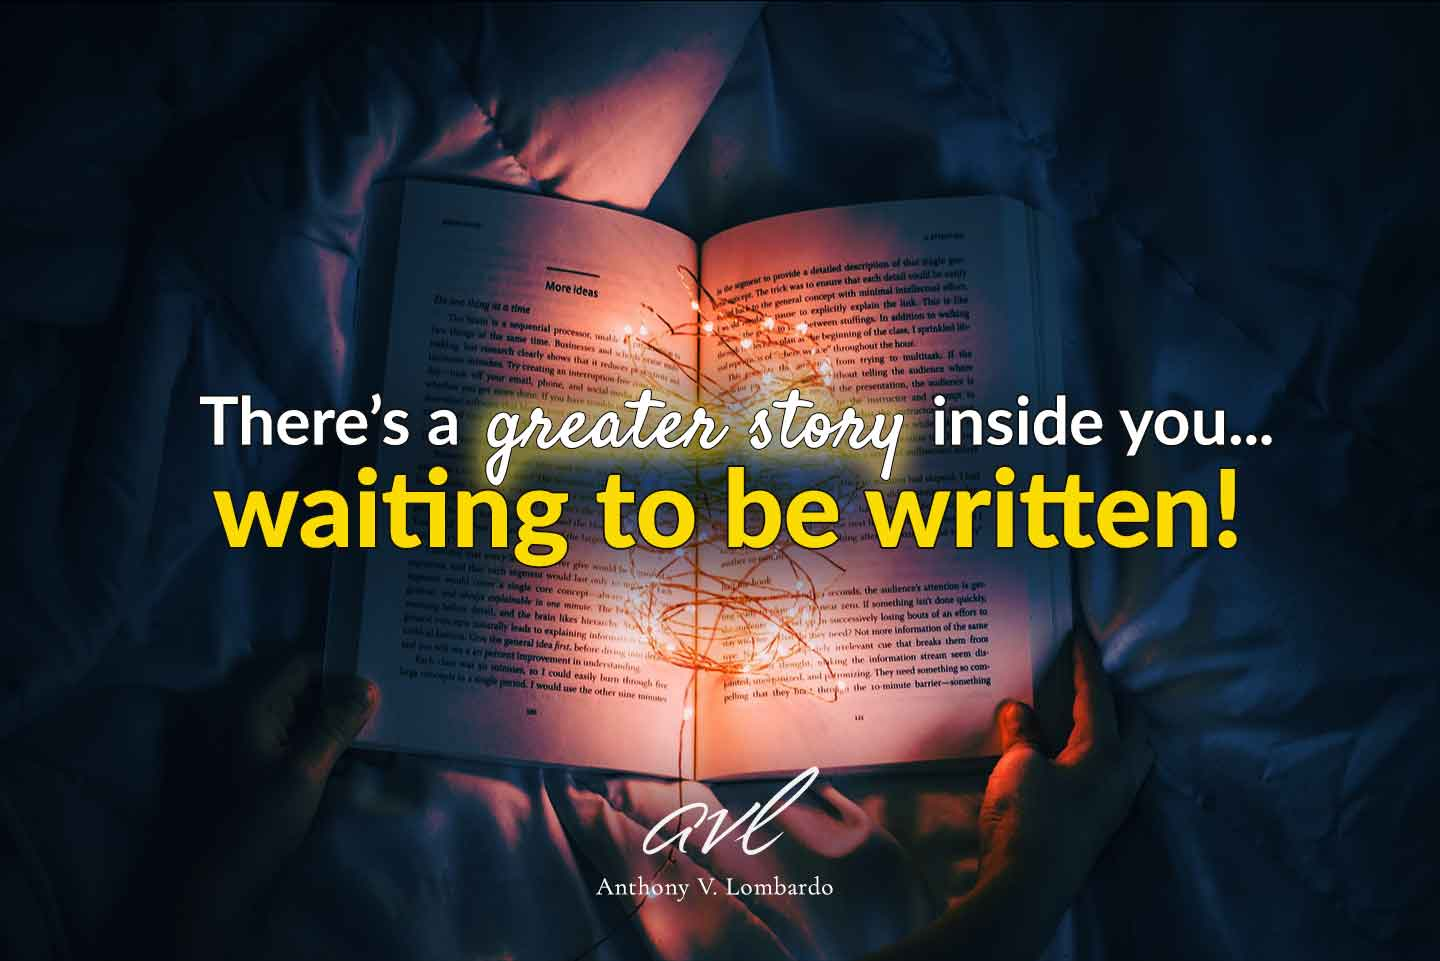 There's a greater story inside you waiting to be written.